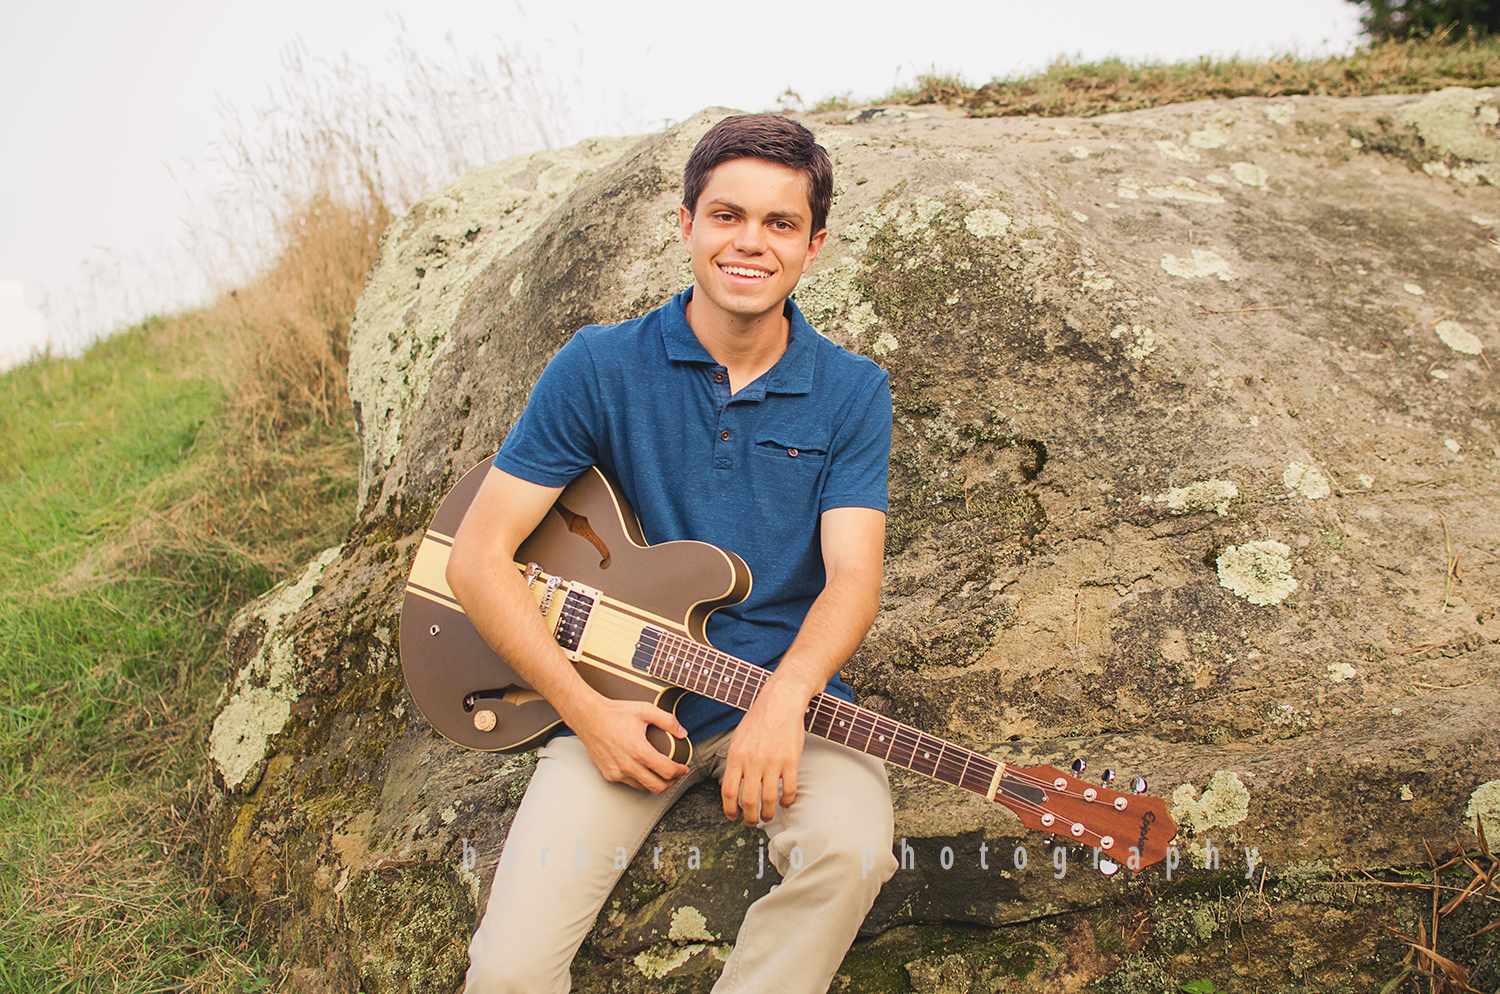 bjp-senior-portraits-guy-photographer-dover-nphs-ohio-drum-band-rock-quaker-tyler4.png